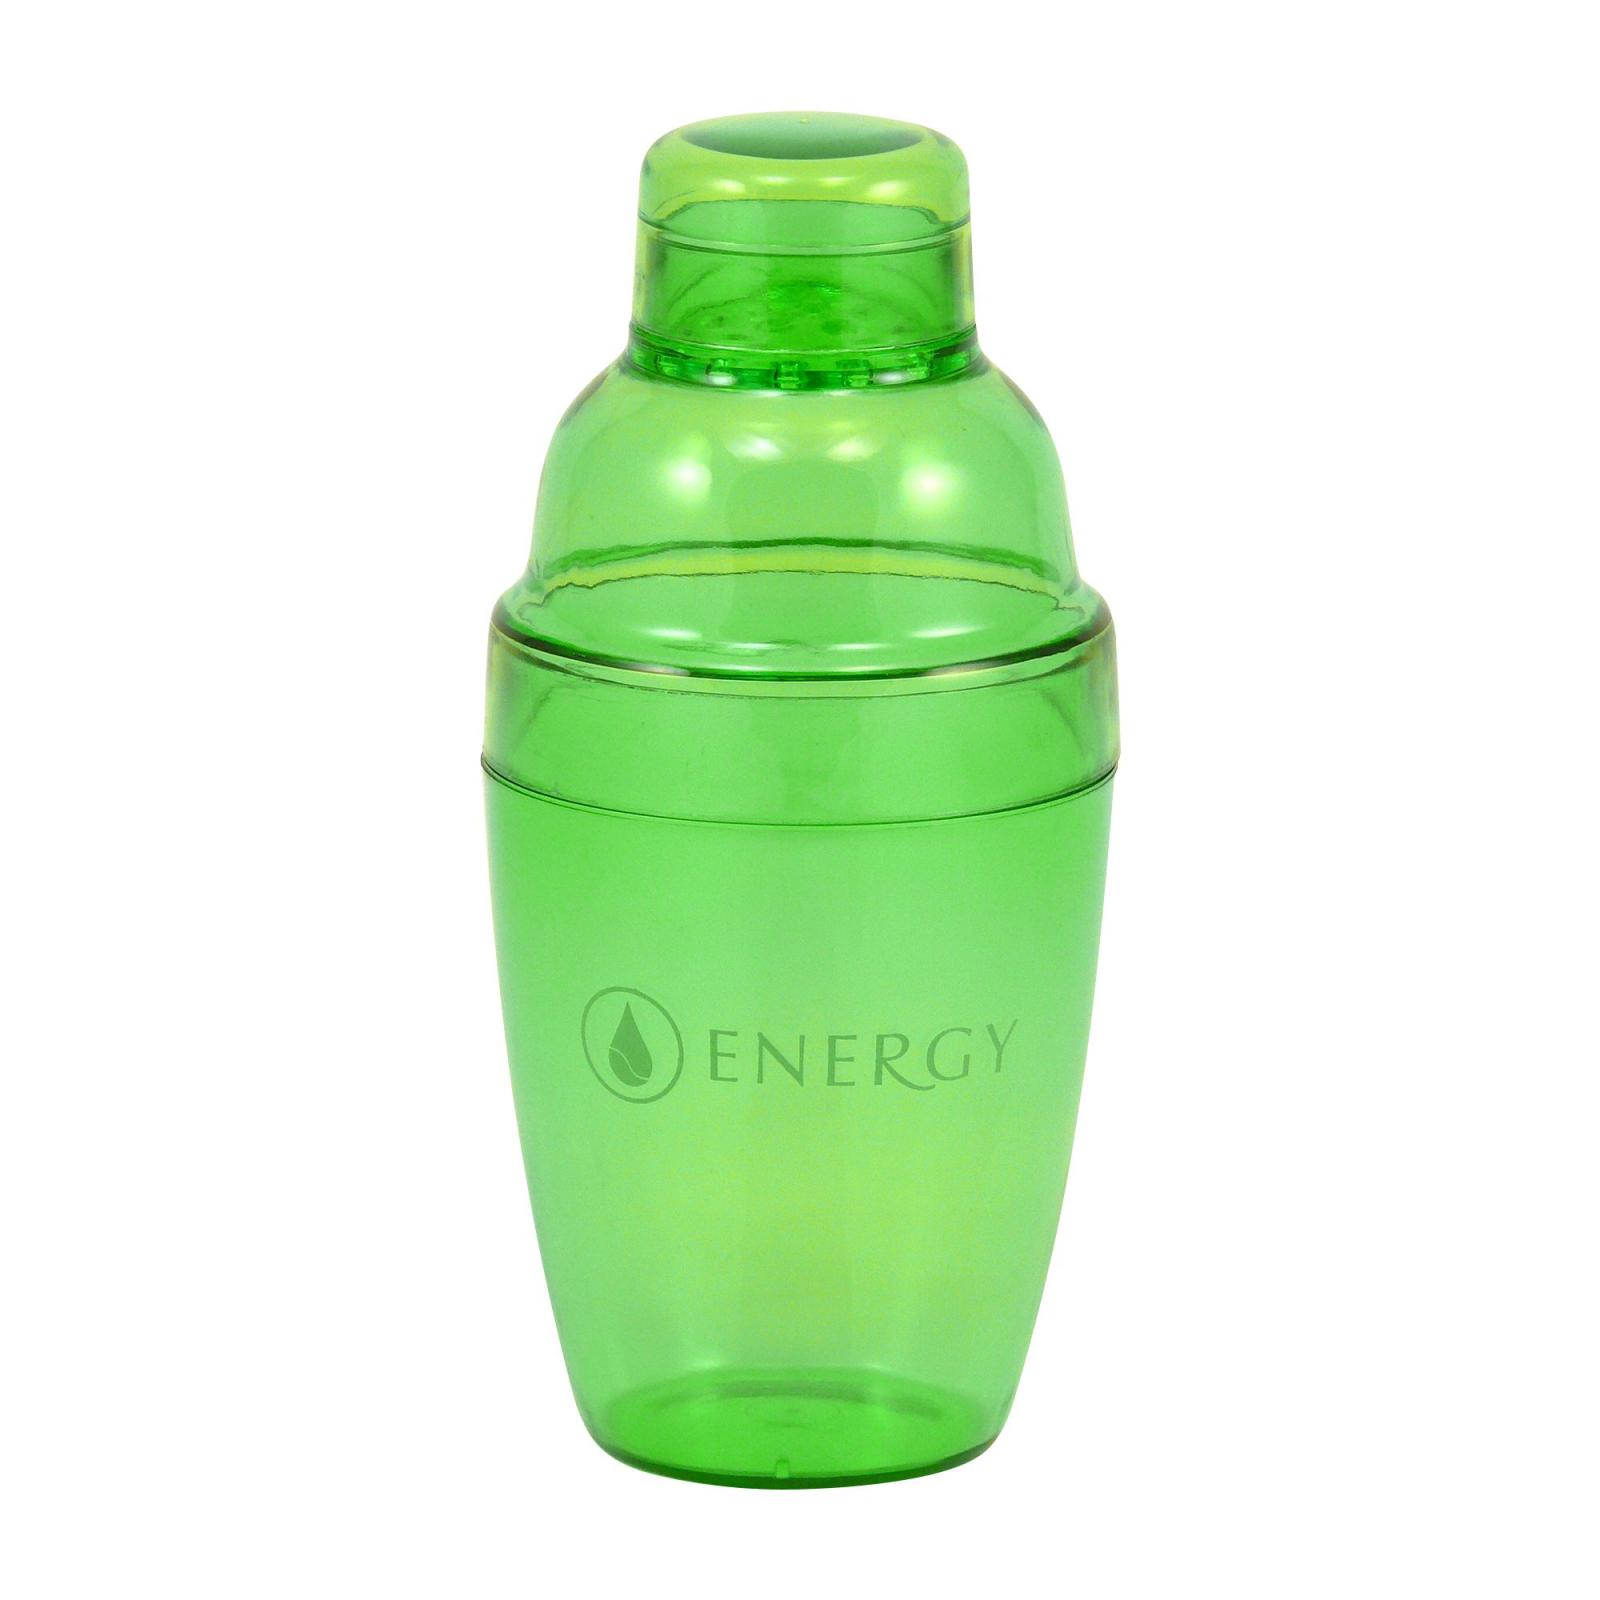 Energy Šejkr 200 ml, plast